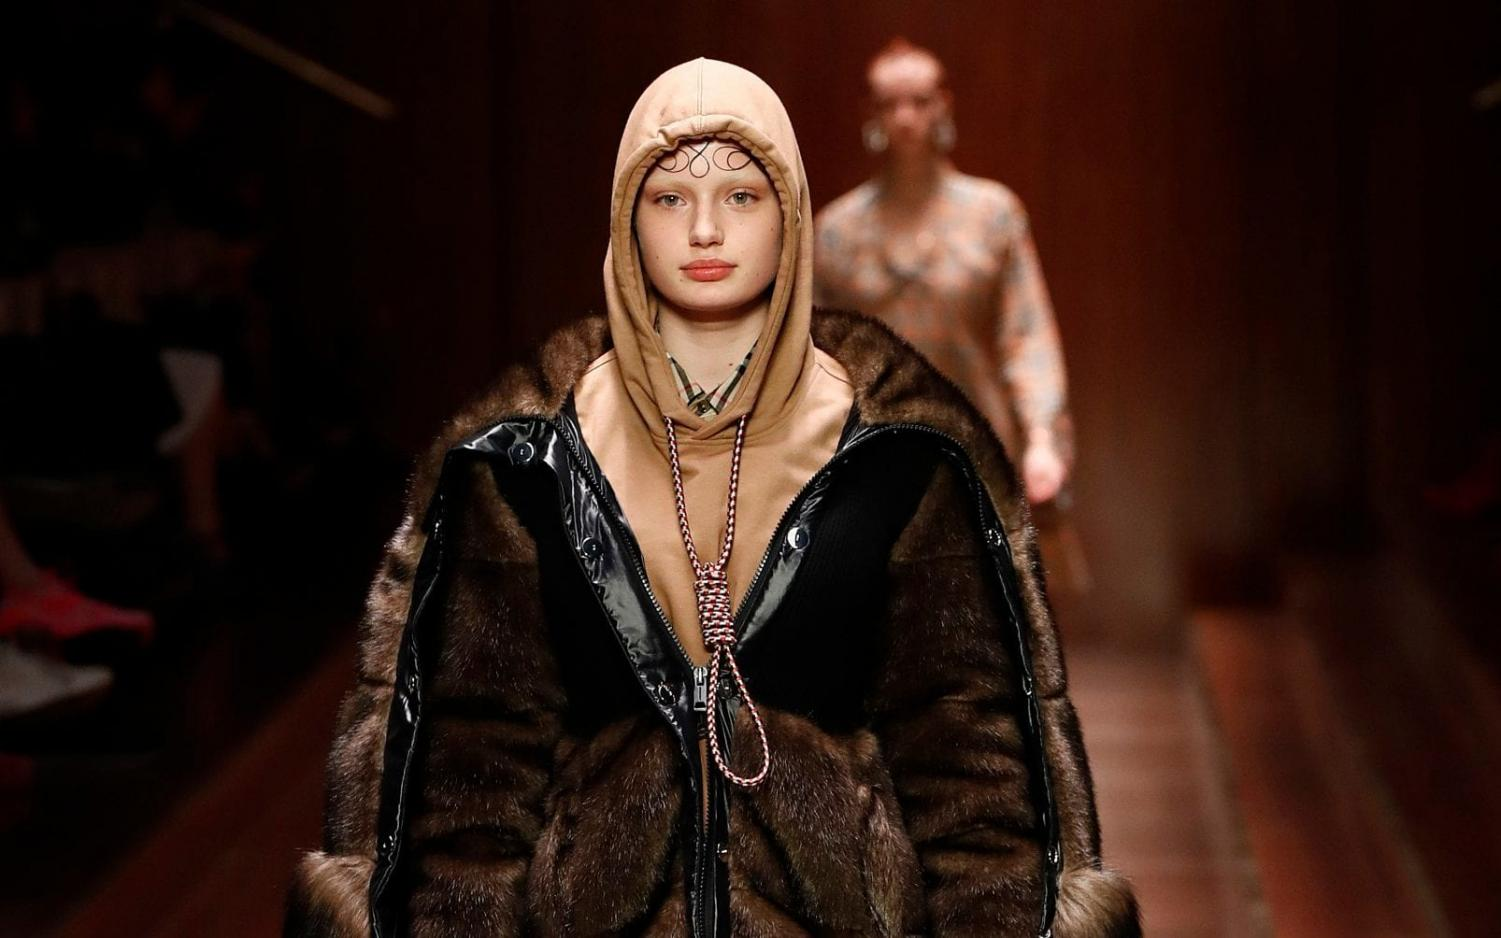 Burberry sent a model down the runway with her hoodie strings tied in a noose.